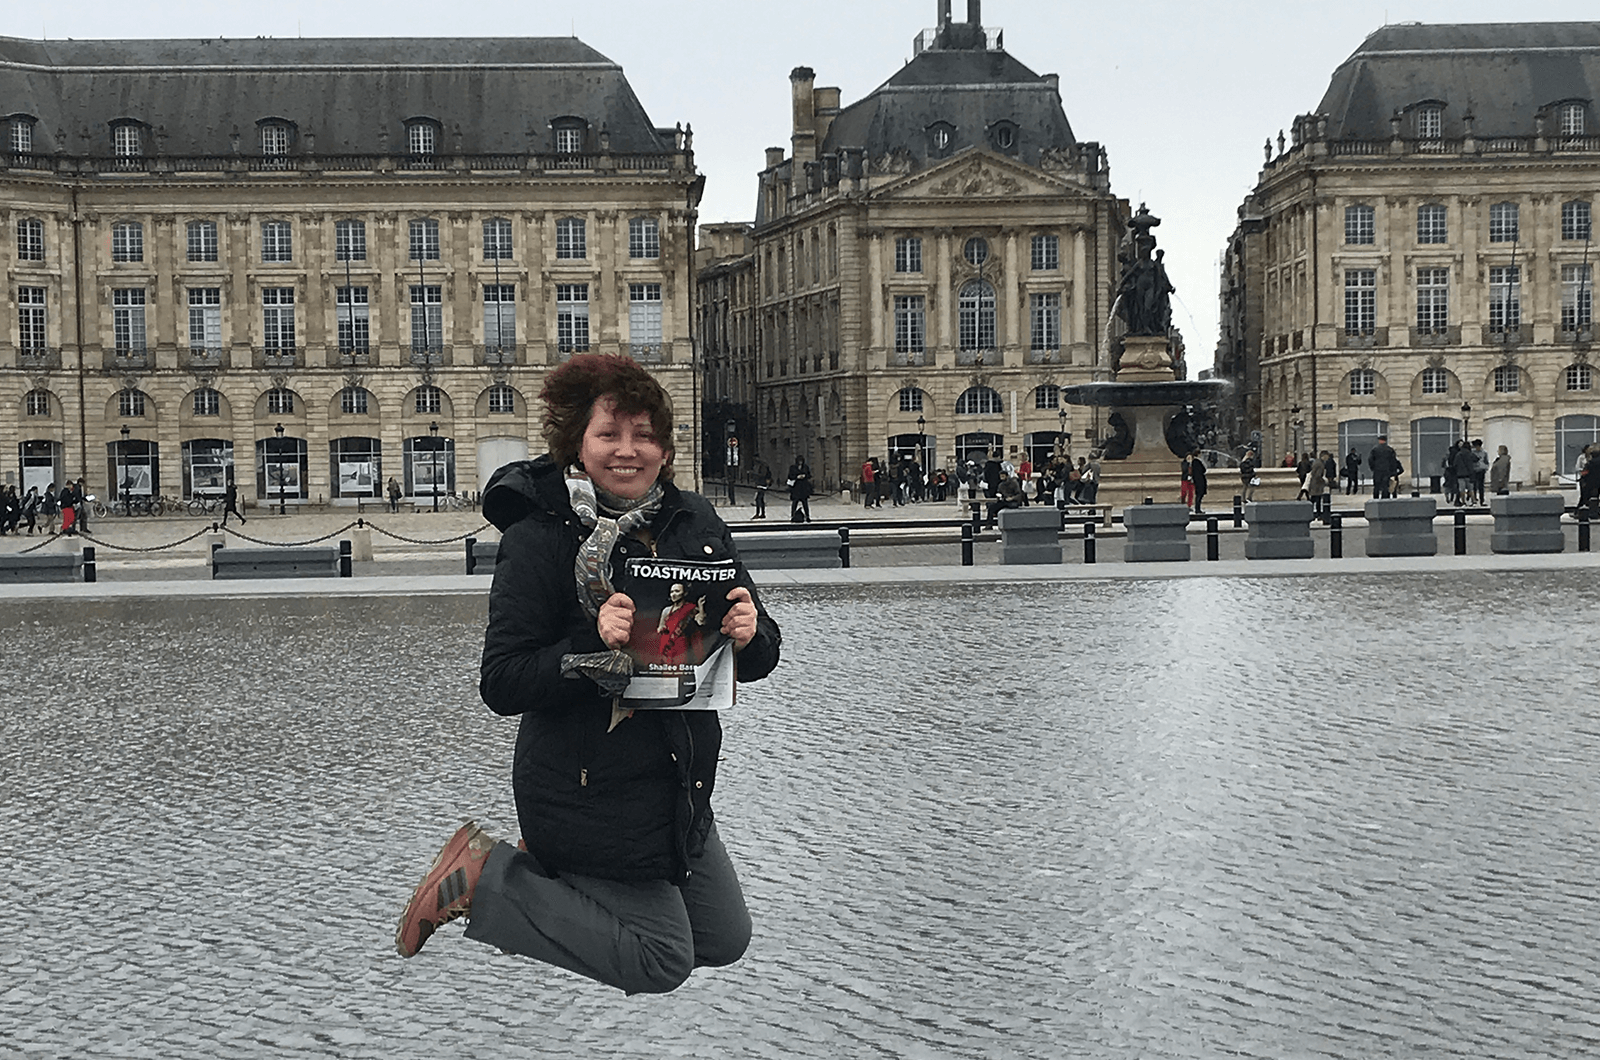 Elena Schwartz, of North Potomac, Maryland, jumps high in front of the Miroir d'eau (Water Mirror). The world's largest reflecting pool in Bordeaux, France, is just two centimeters deep.